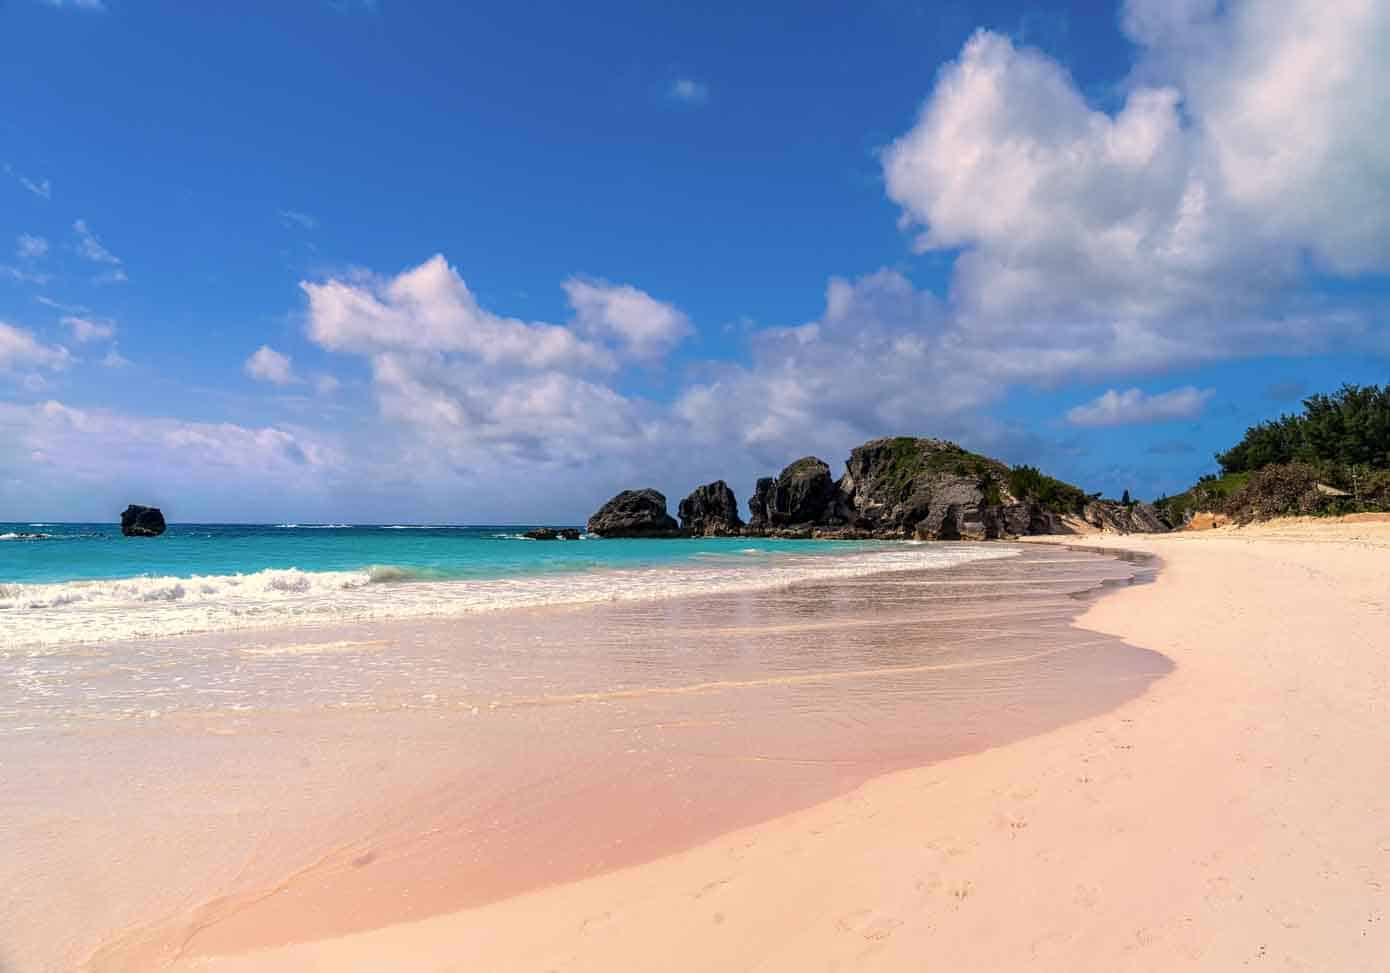 Beach with pink sand in Bermuda.